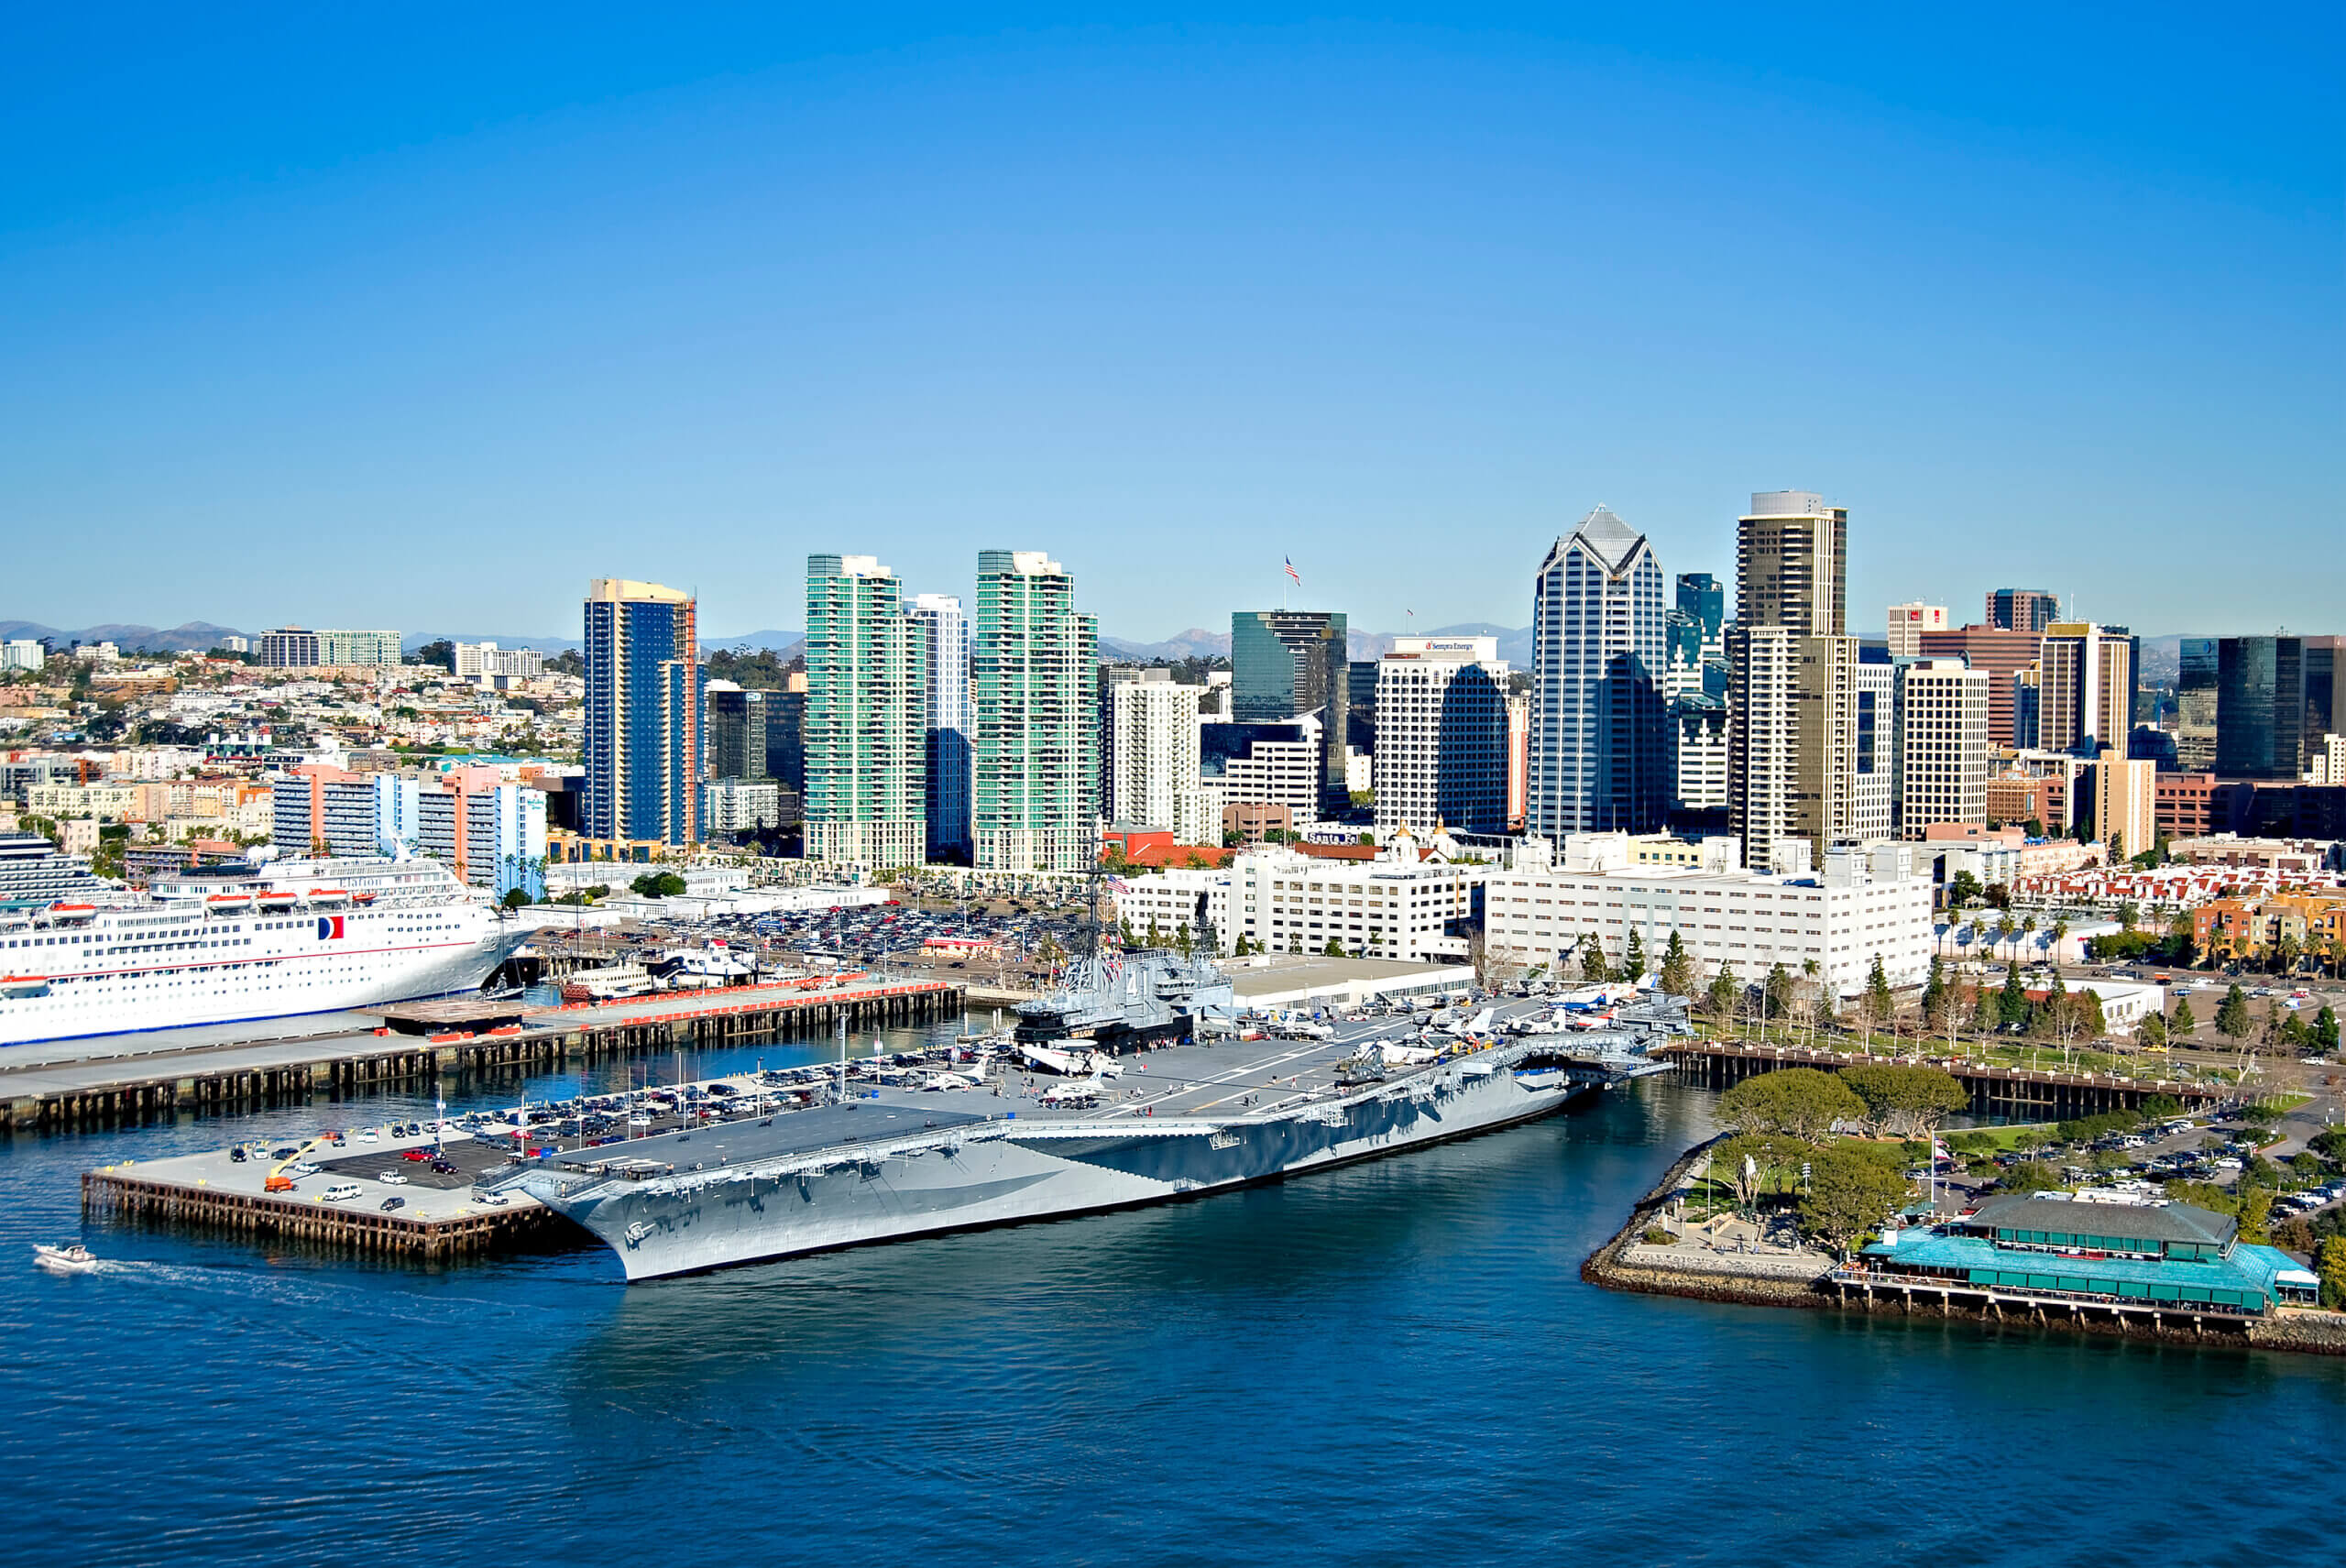 Imagine experiencing life at sea aboard one of America's longest-serving aircraft carriers. Visitors to the USS Midway Museum enter a floating city at sea and walk in the footsteps of , Midway sailors who served our country and upheld the American ideals of strength, freedom, and peace.